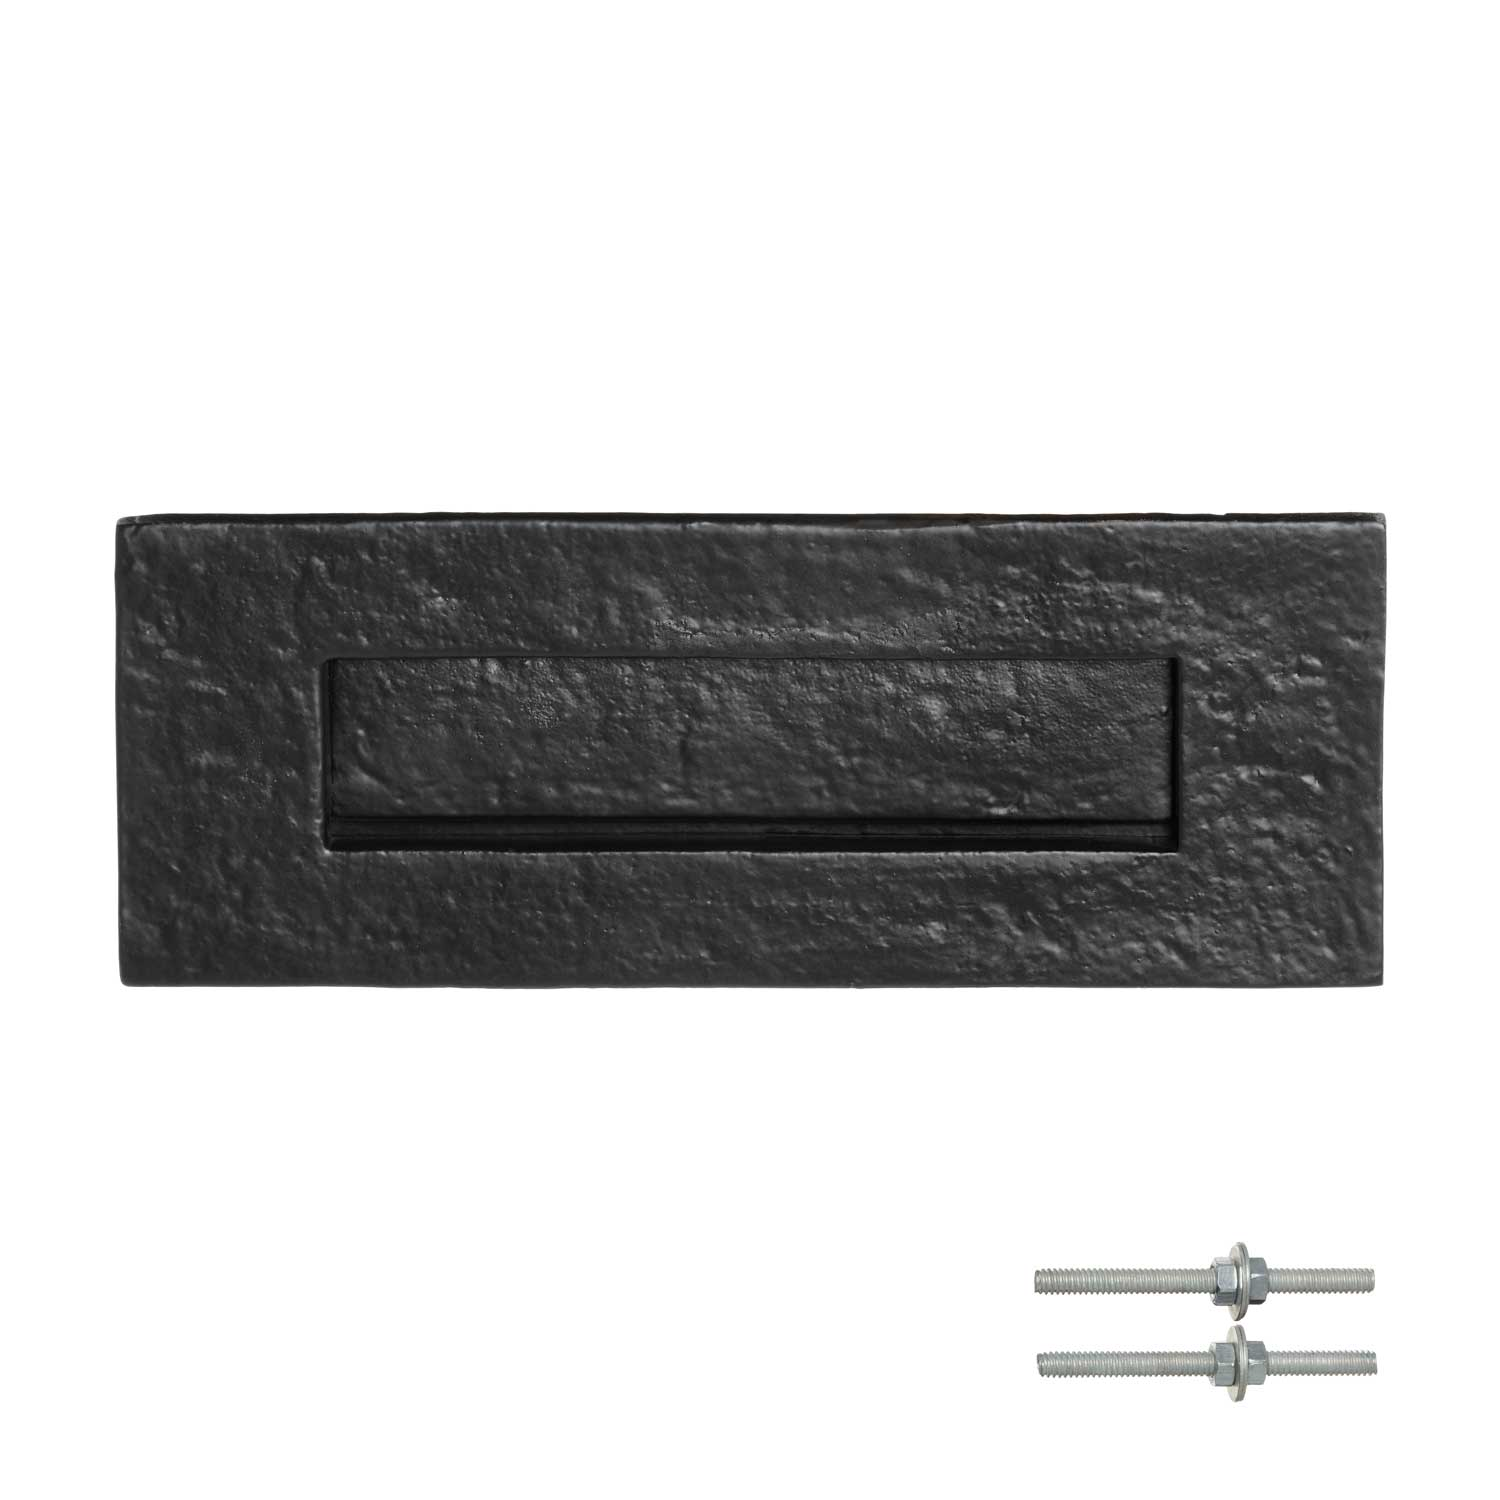 Cast Letter Plate Black Powder Coated Vintage Door